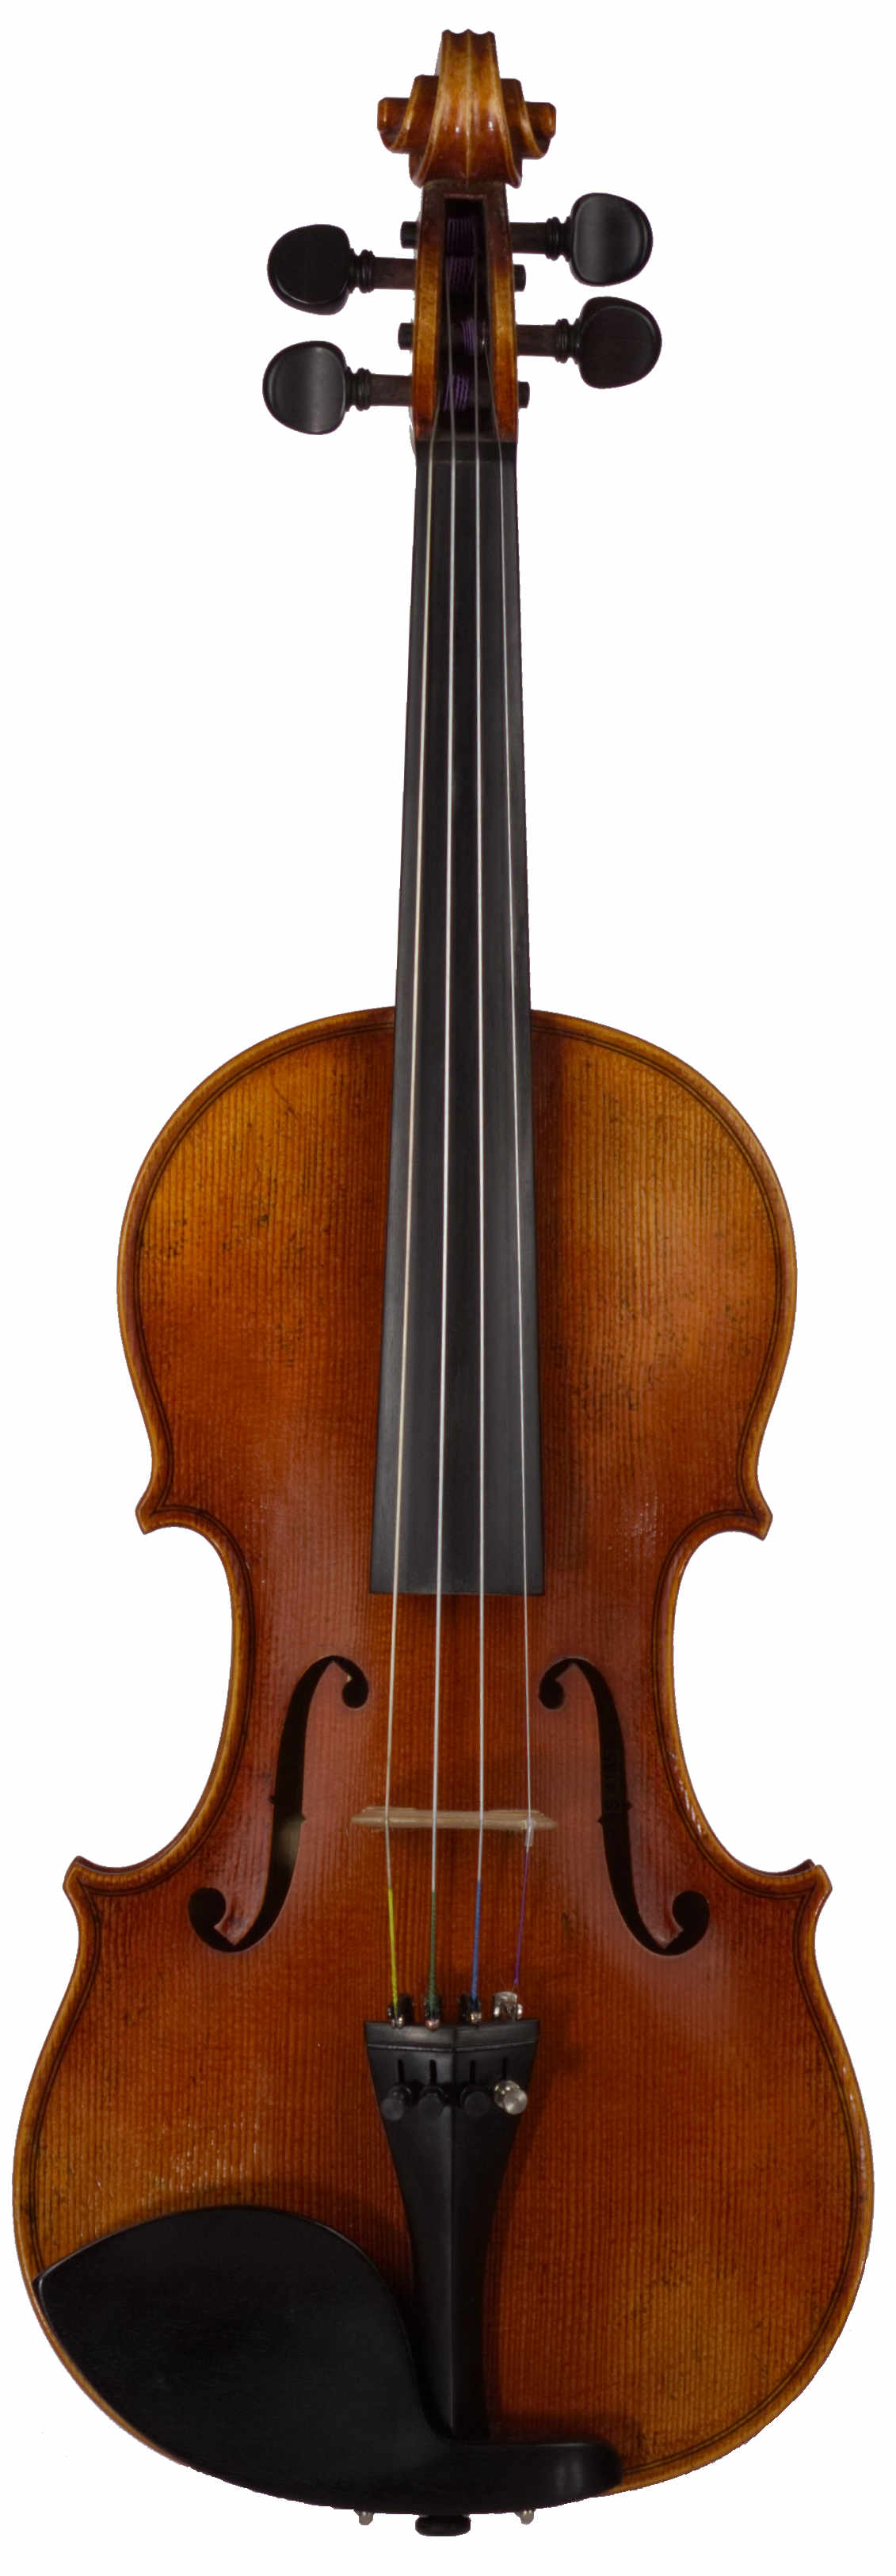 Balestrieri model violin